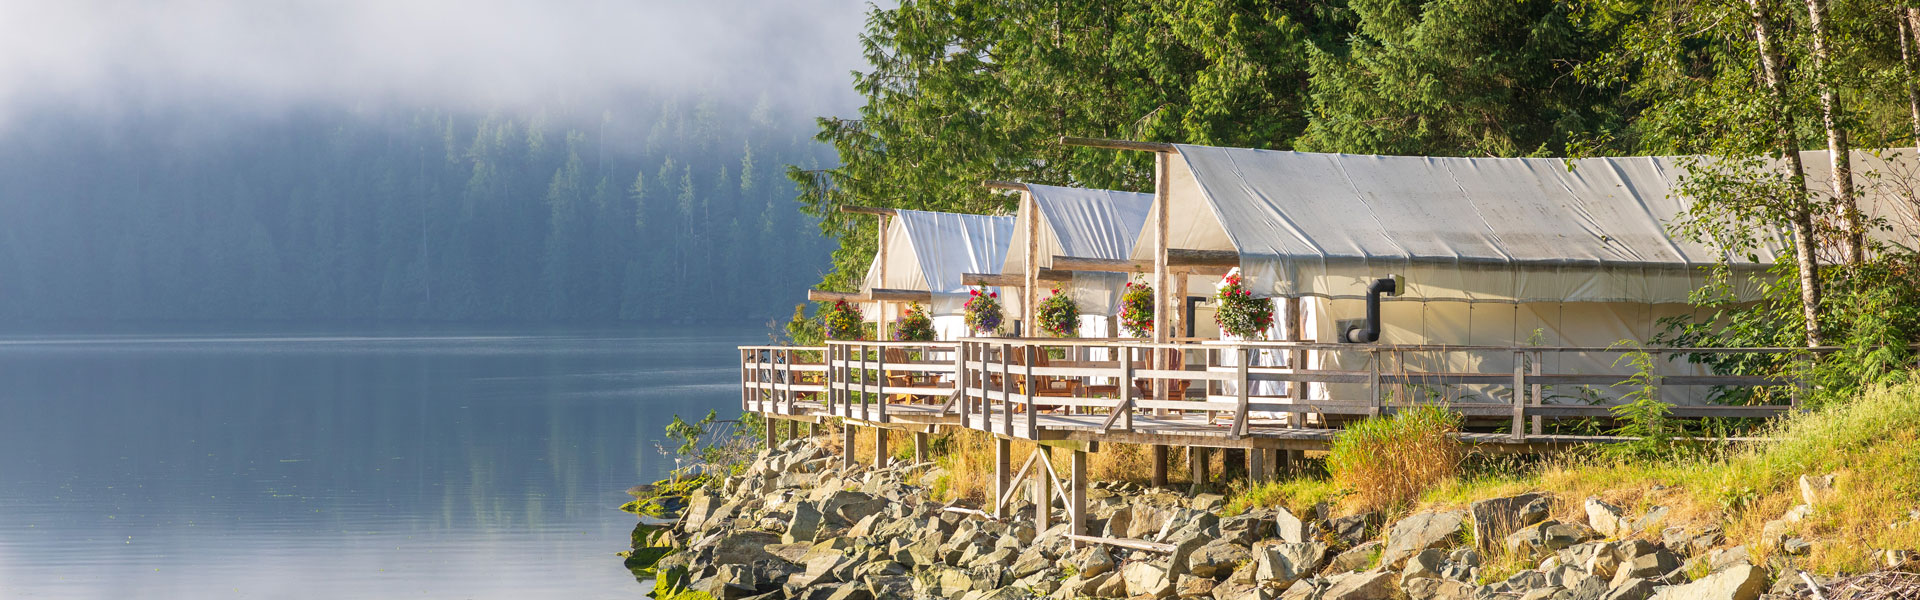 West Coast Canada Train Trips with Luxury Lodges & Hotels